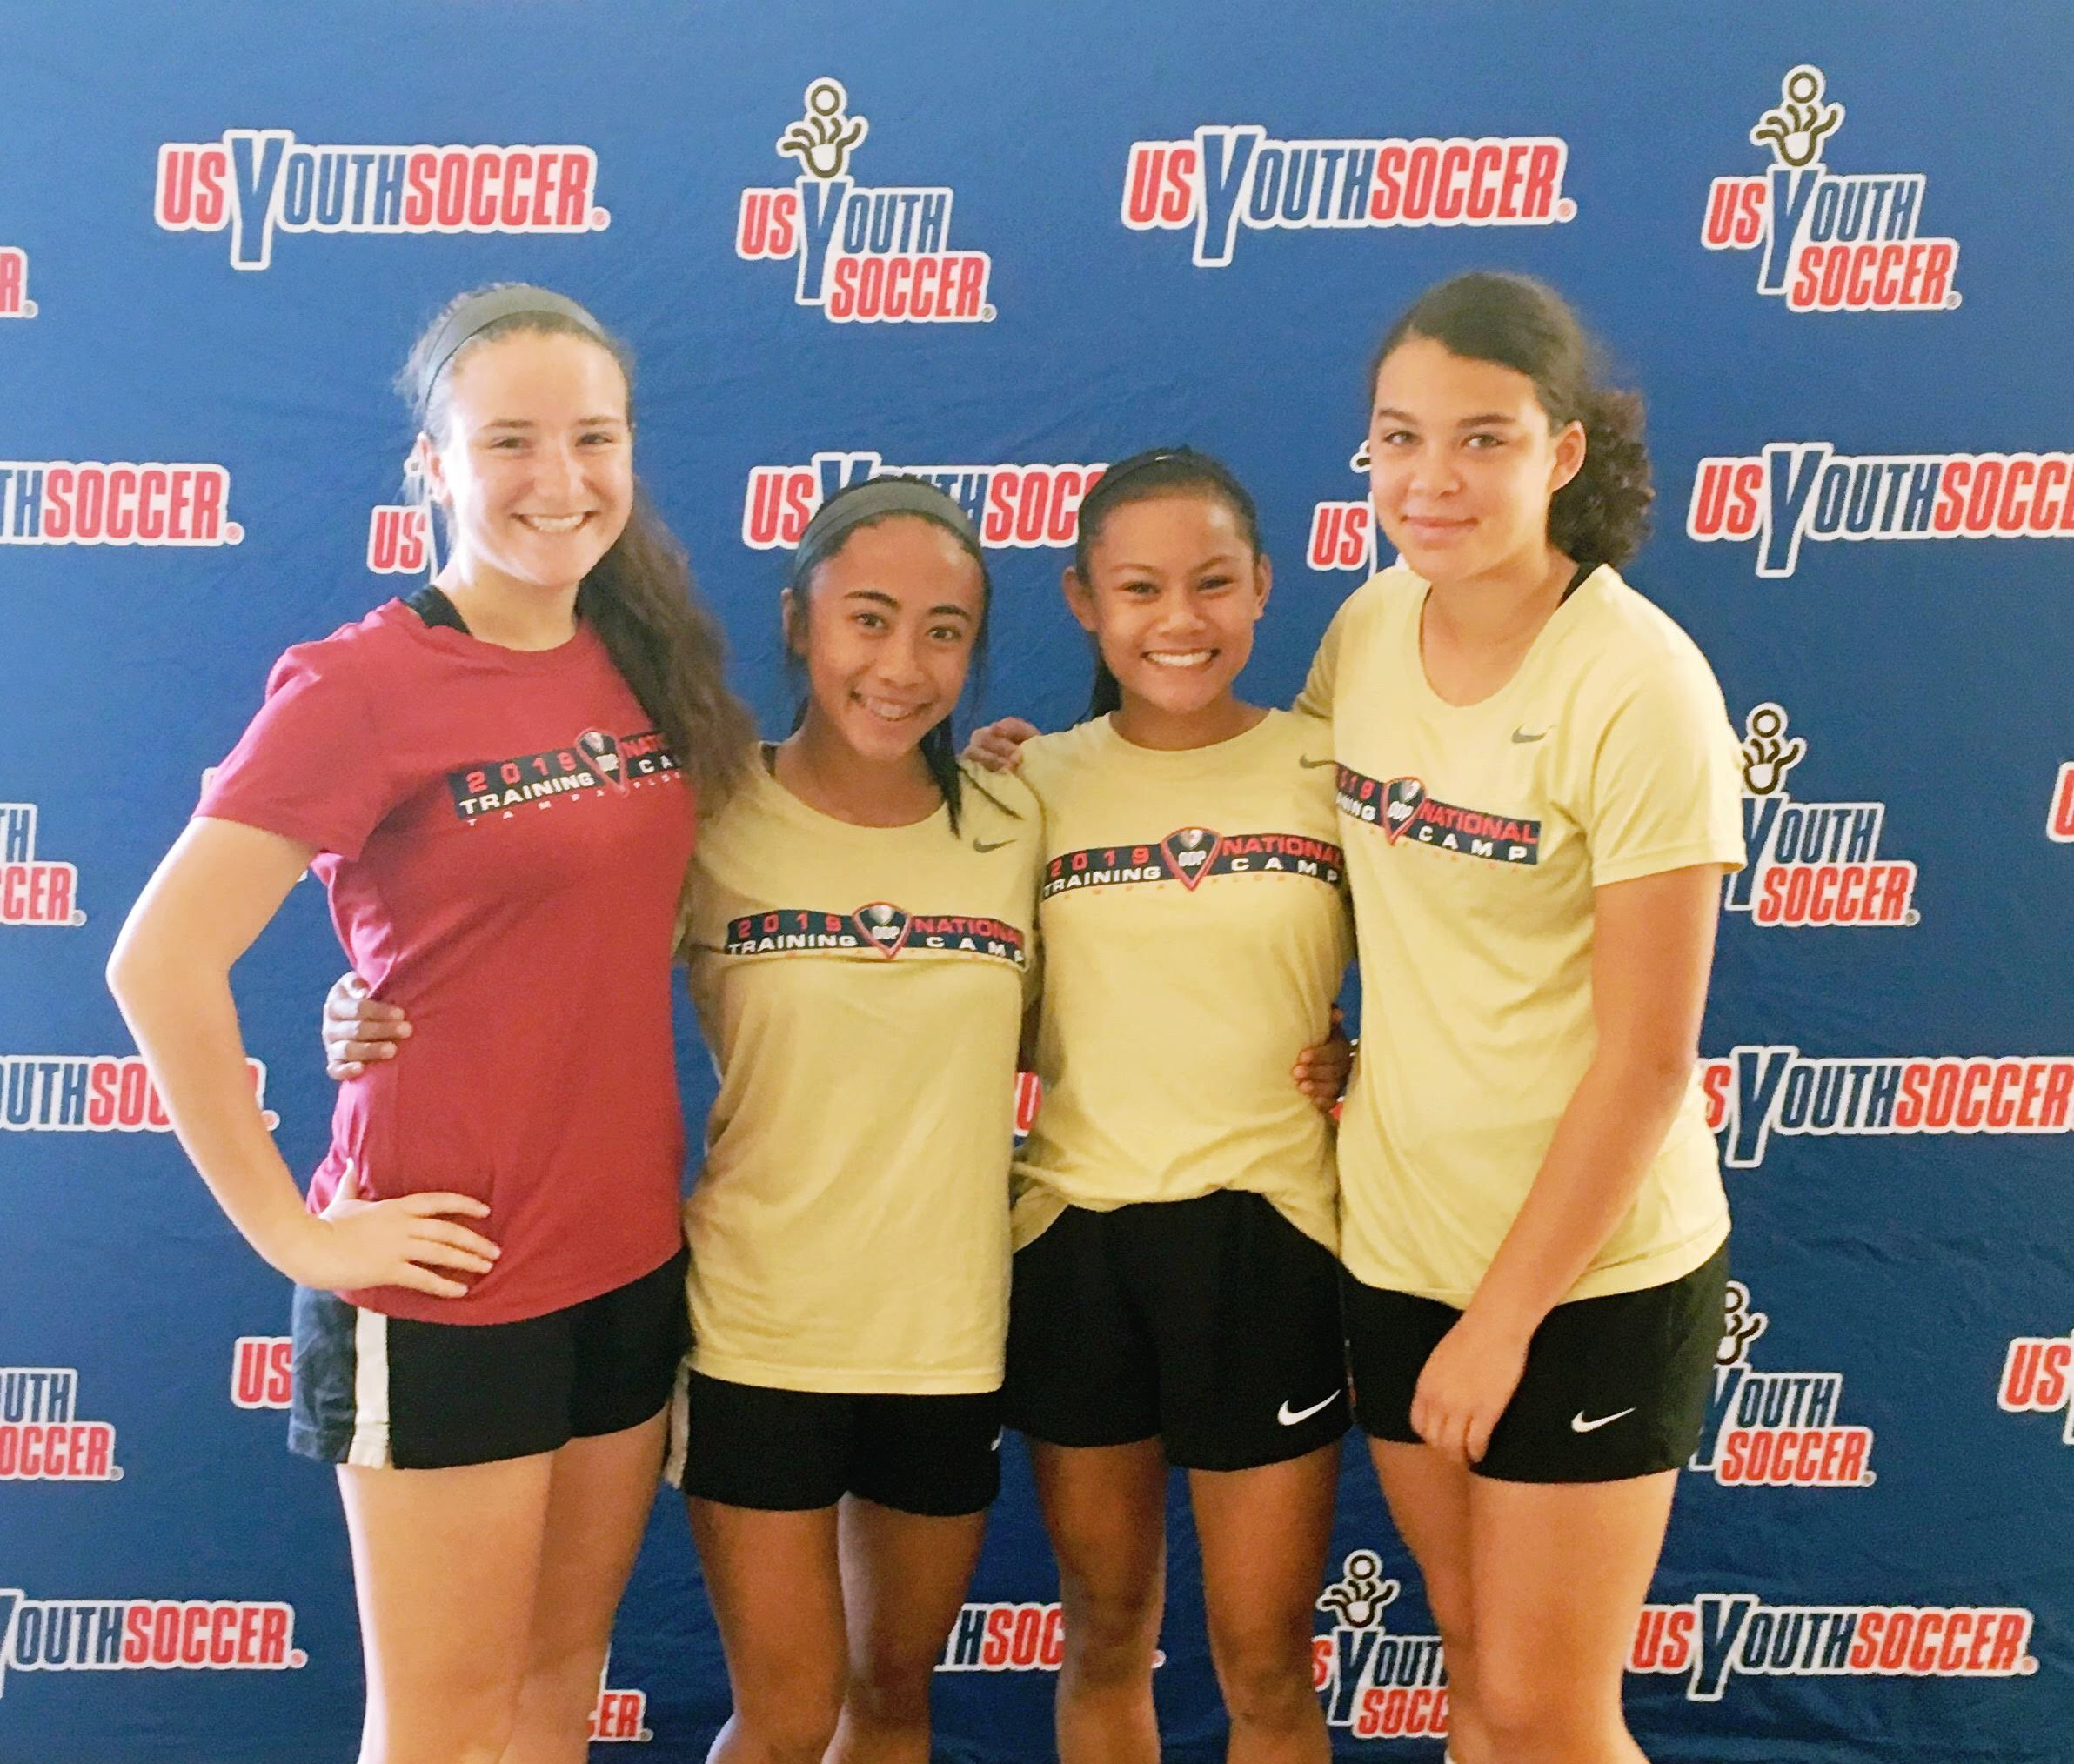 From Left to right: Sadie Brown (04 ECNL), Ashleigh Garcia (04 ECNL), Emily Estrada (05 ECNL) and Katie String (05 ECNL)